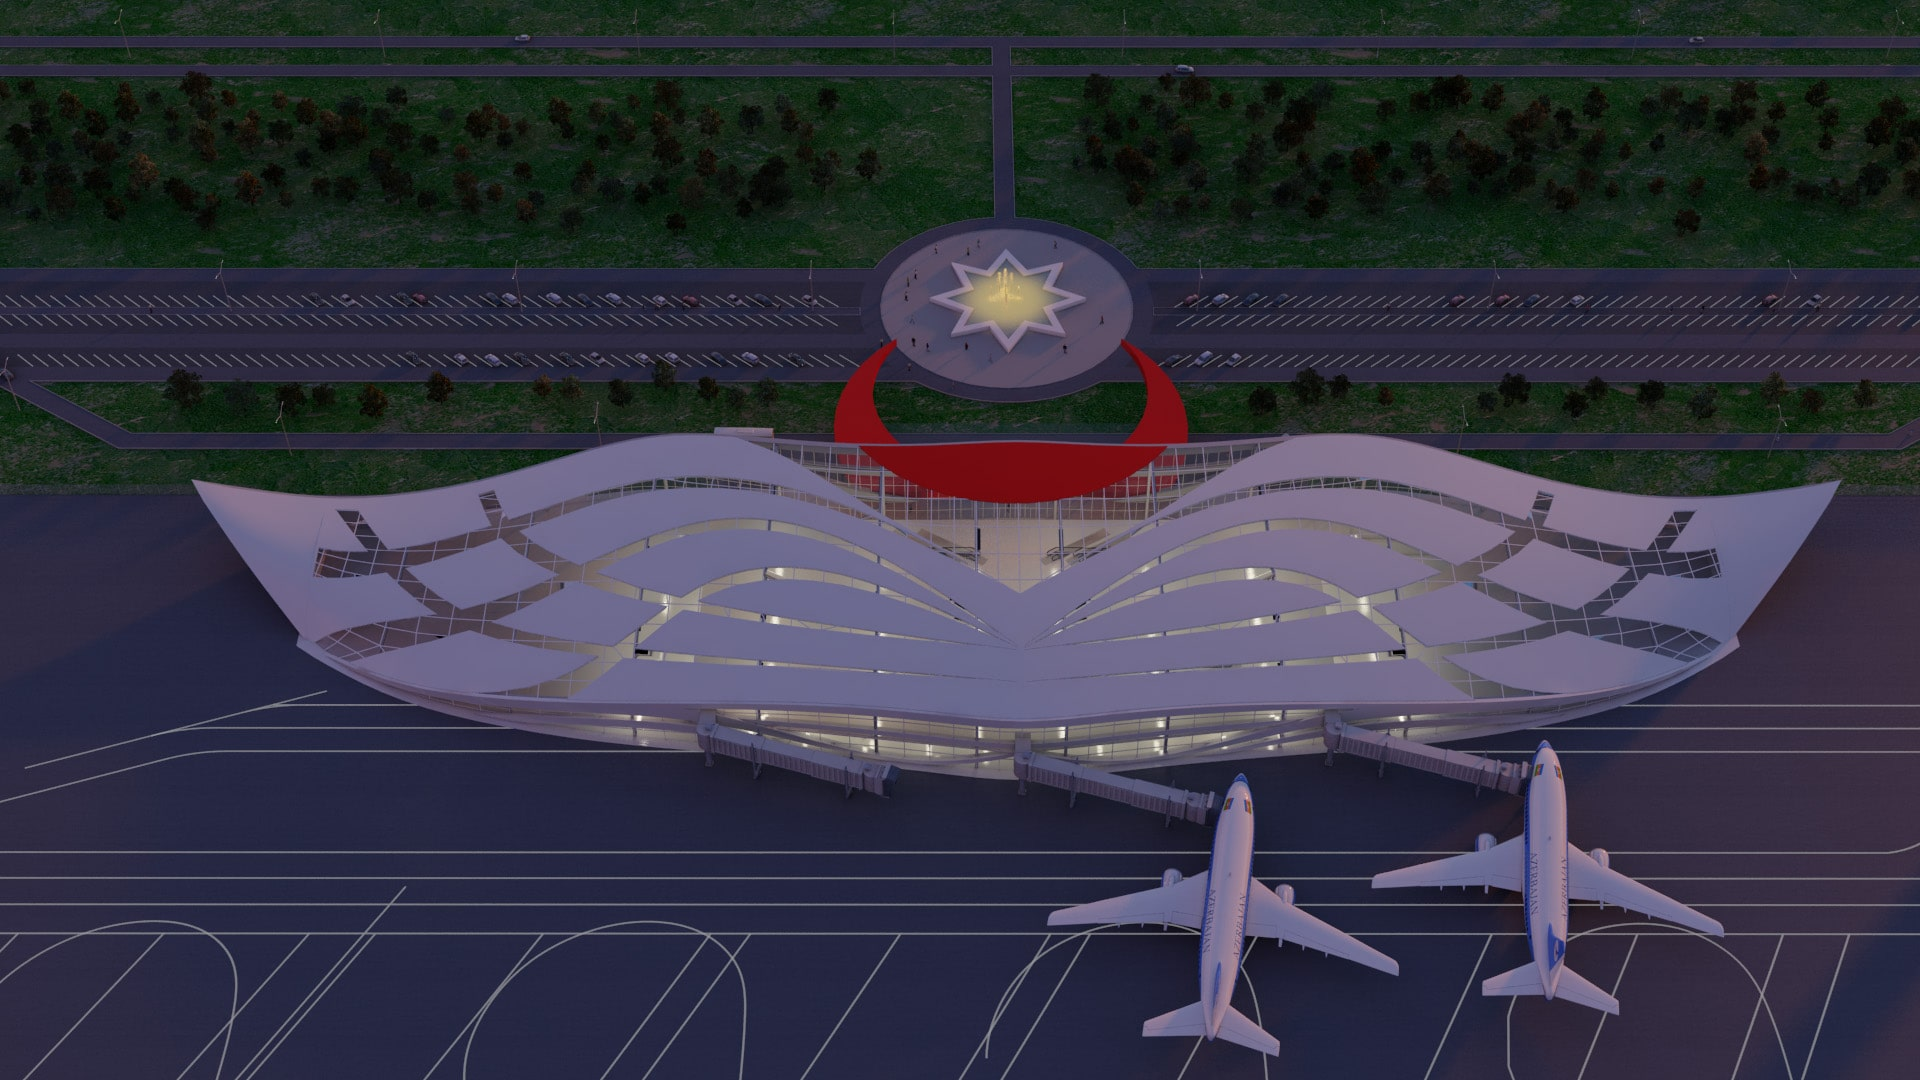 3D Airport Beylagan side view